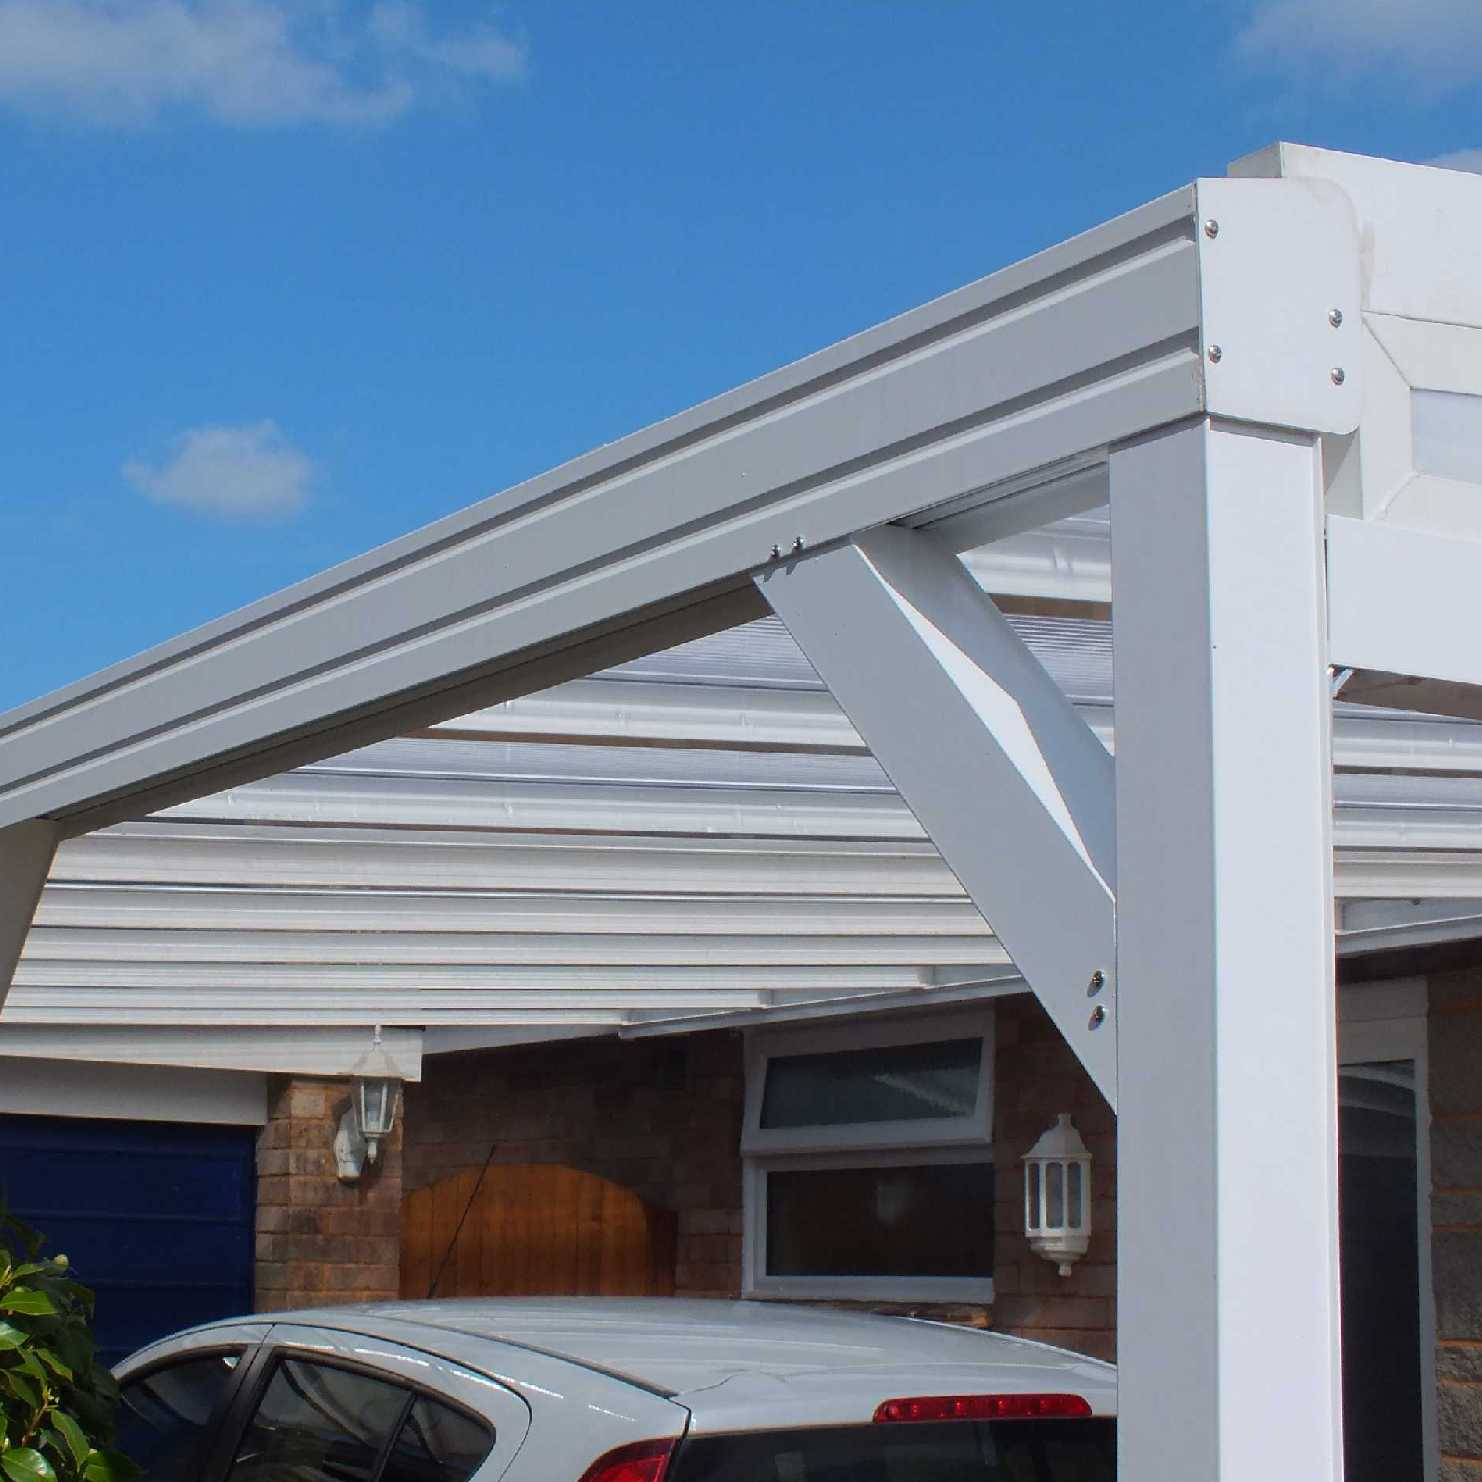 Great deals on Omega Smart White Lean-To Canopy with 16mm Polycarbonate Glazing - 9.9m (W) x 3.5m (P), (5) Supporting Posts